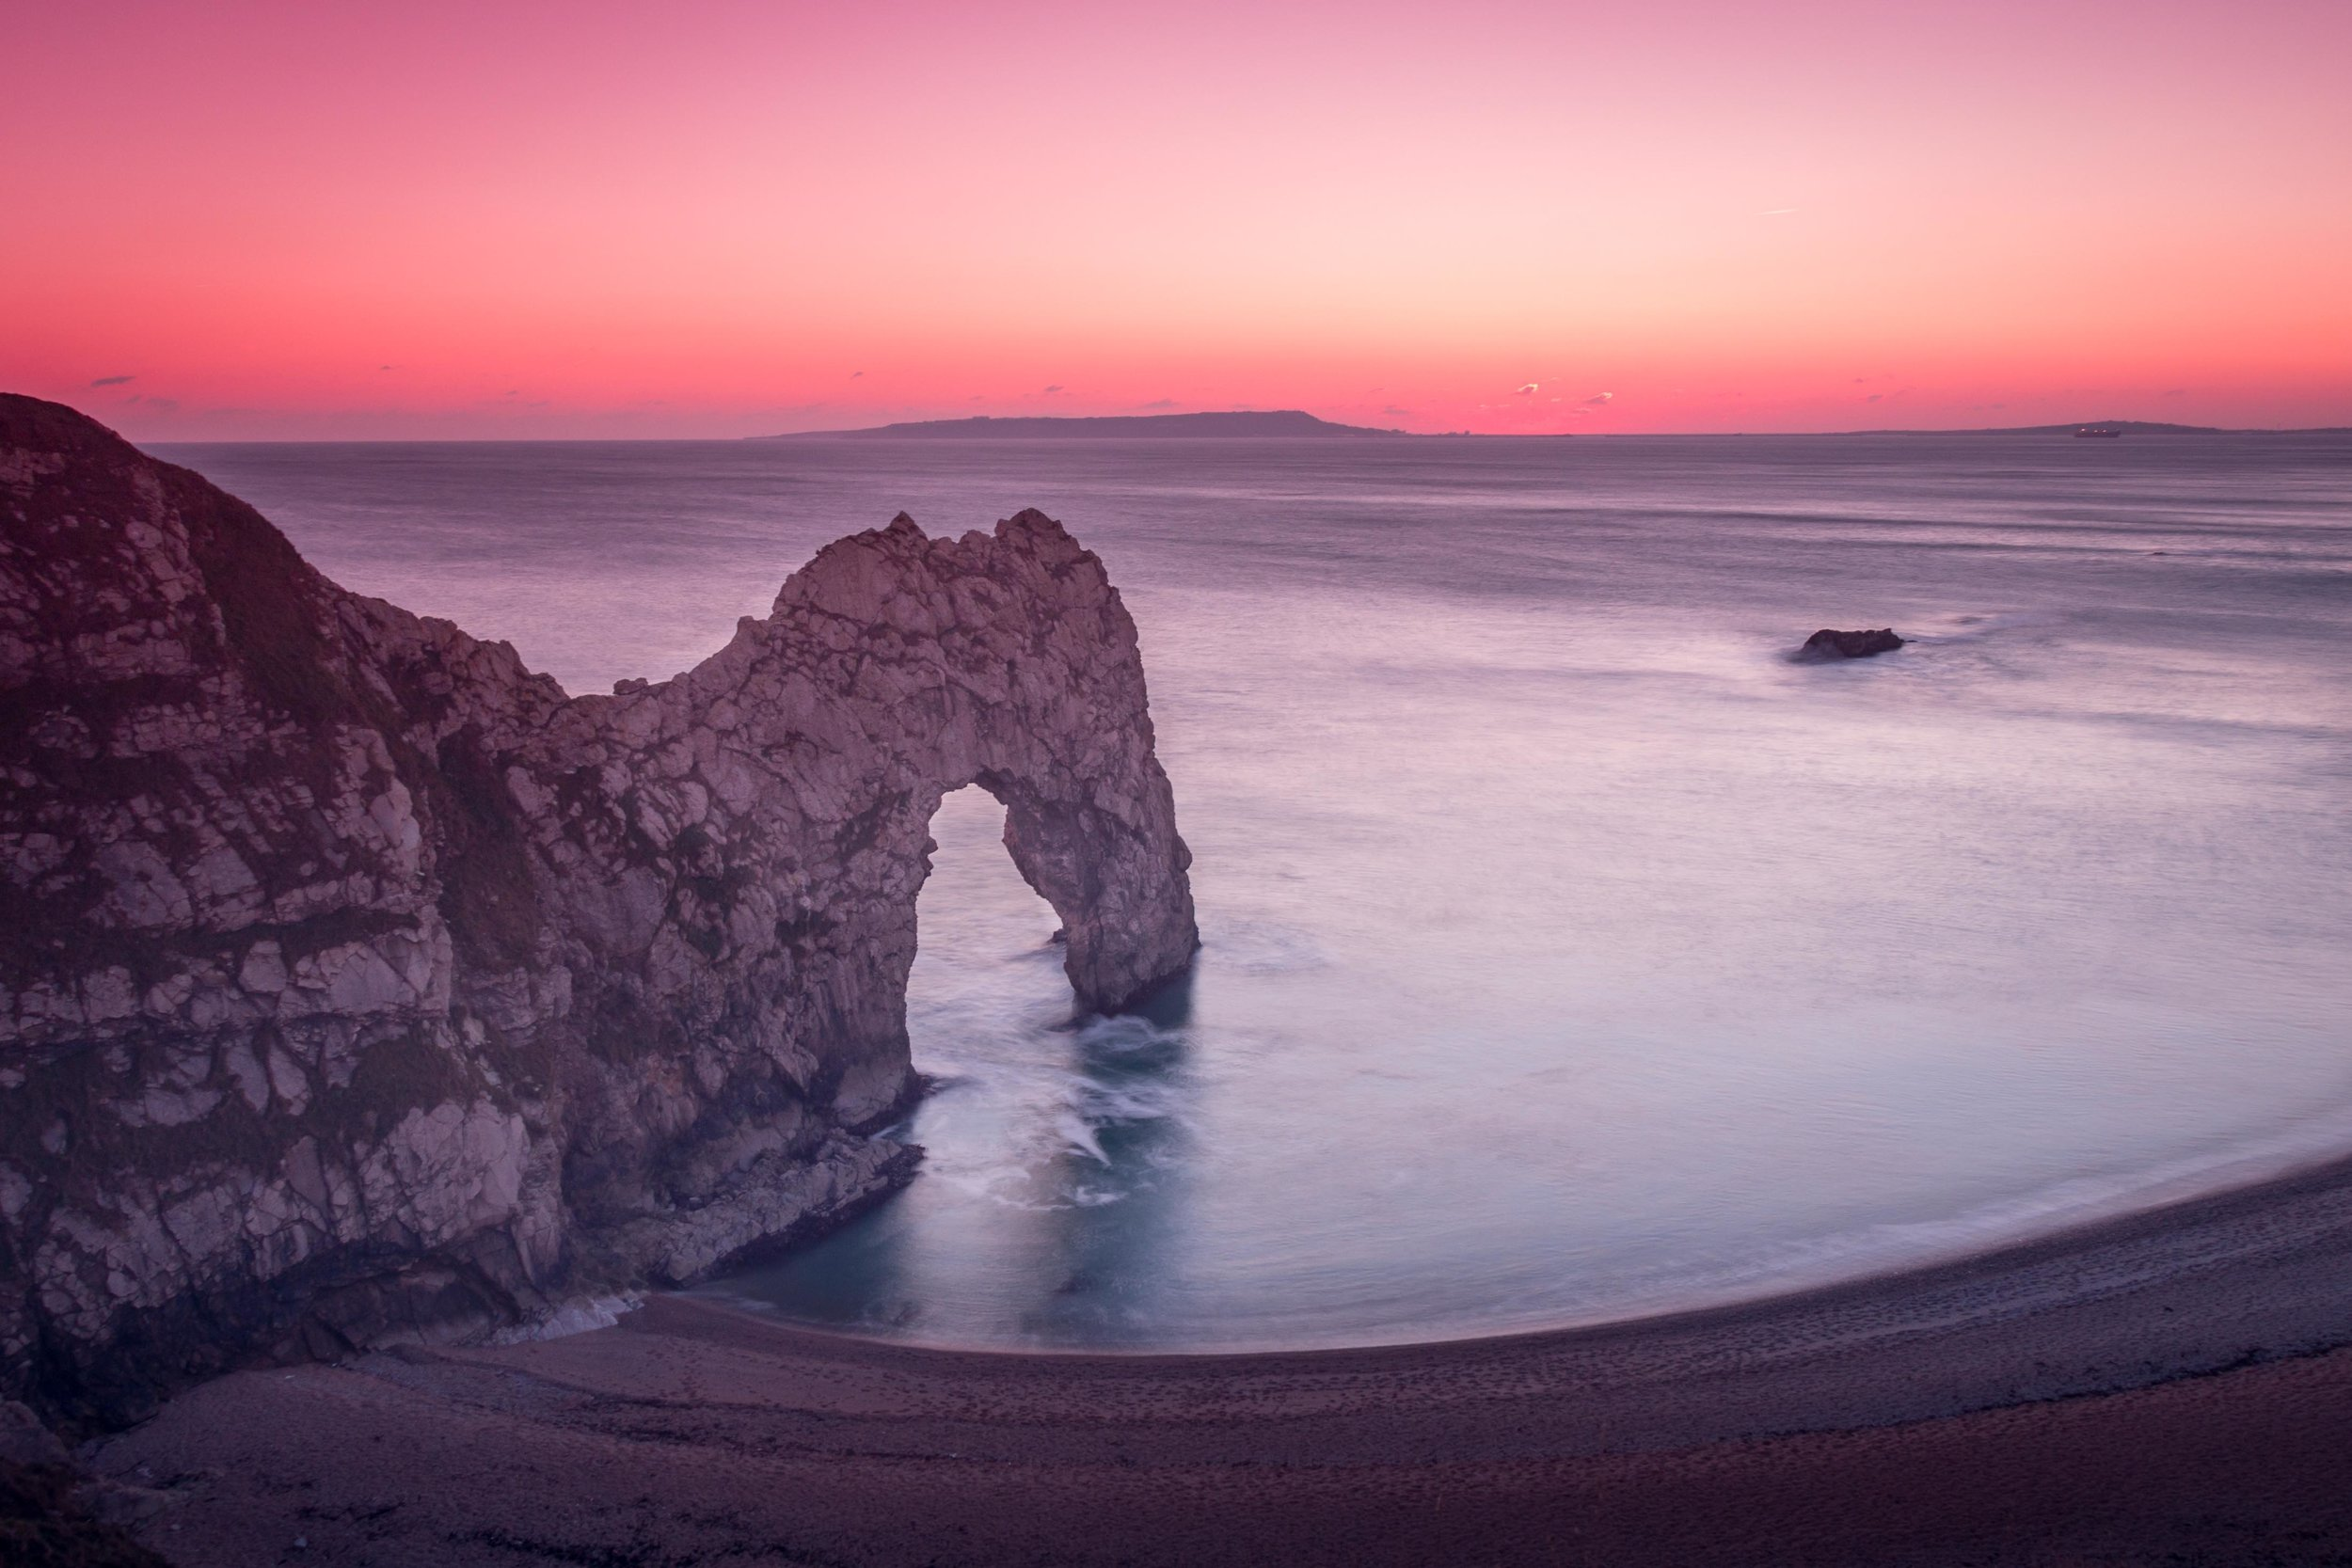 Durdle_Door-1.jpg